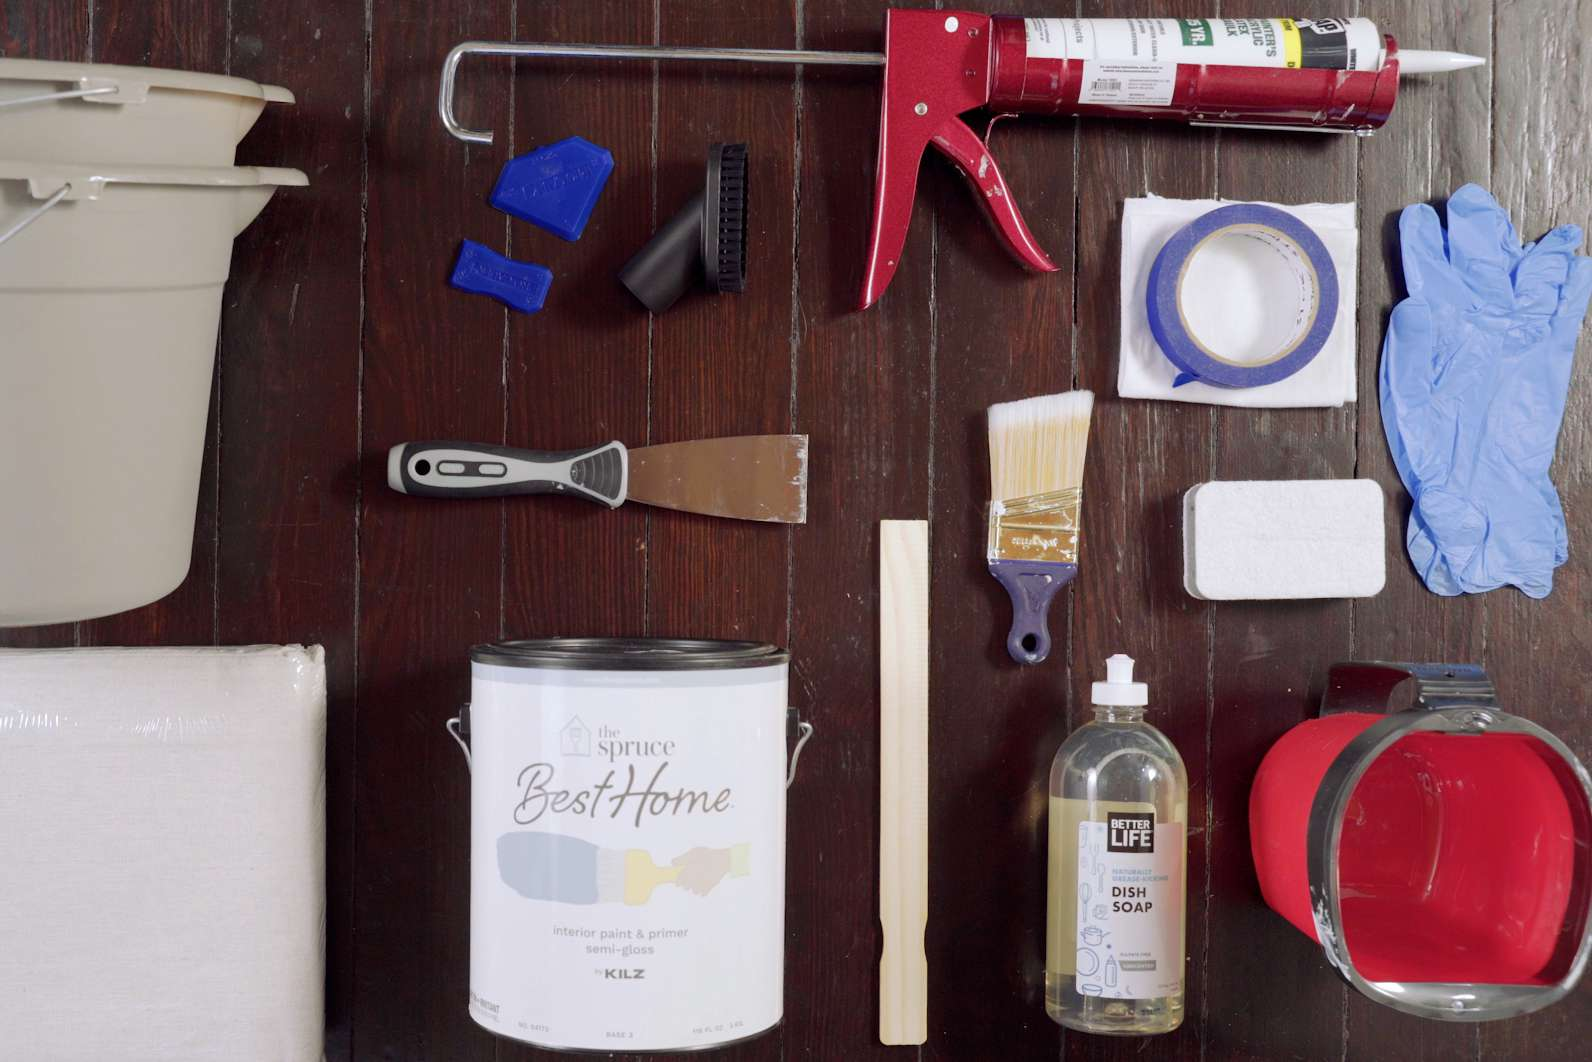 Materials and tools laid on dark brown wooden surface to paint baseboards